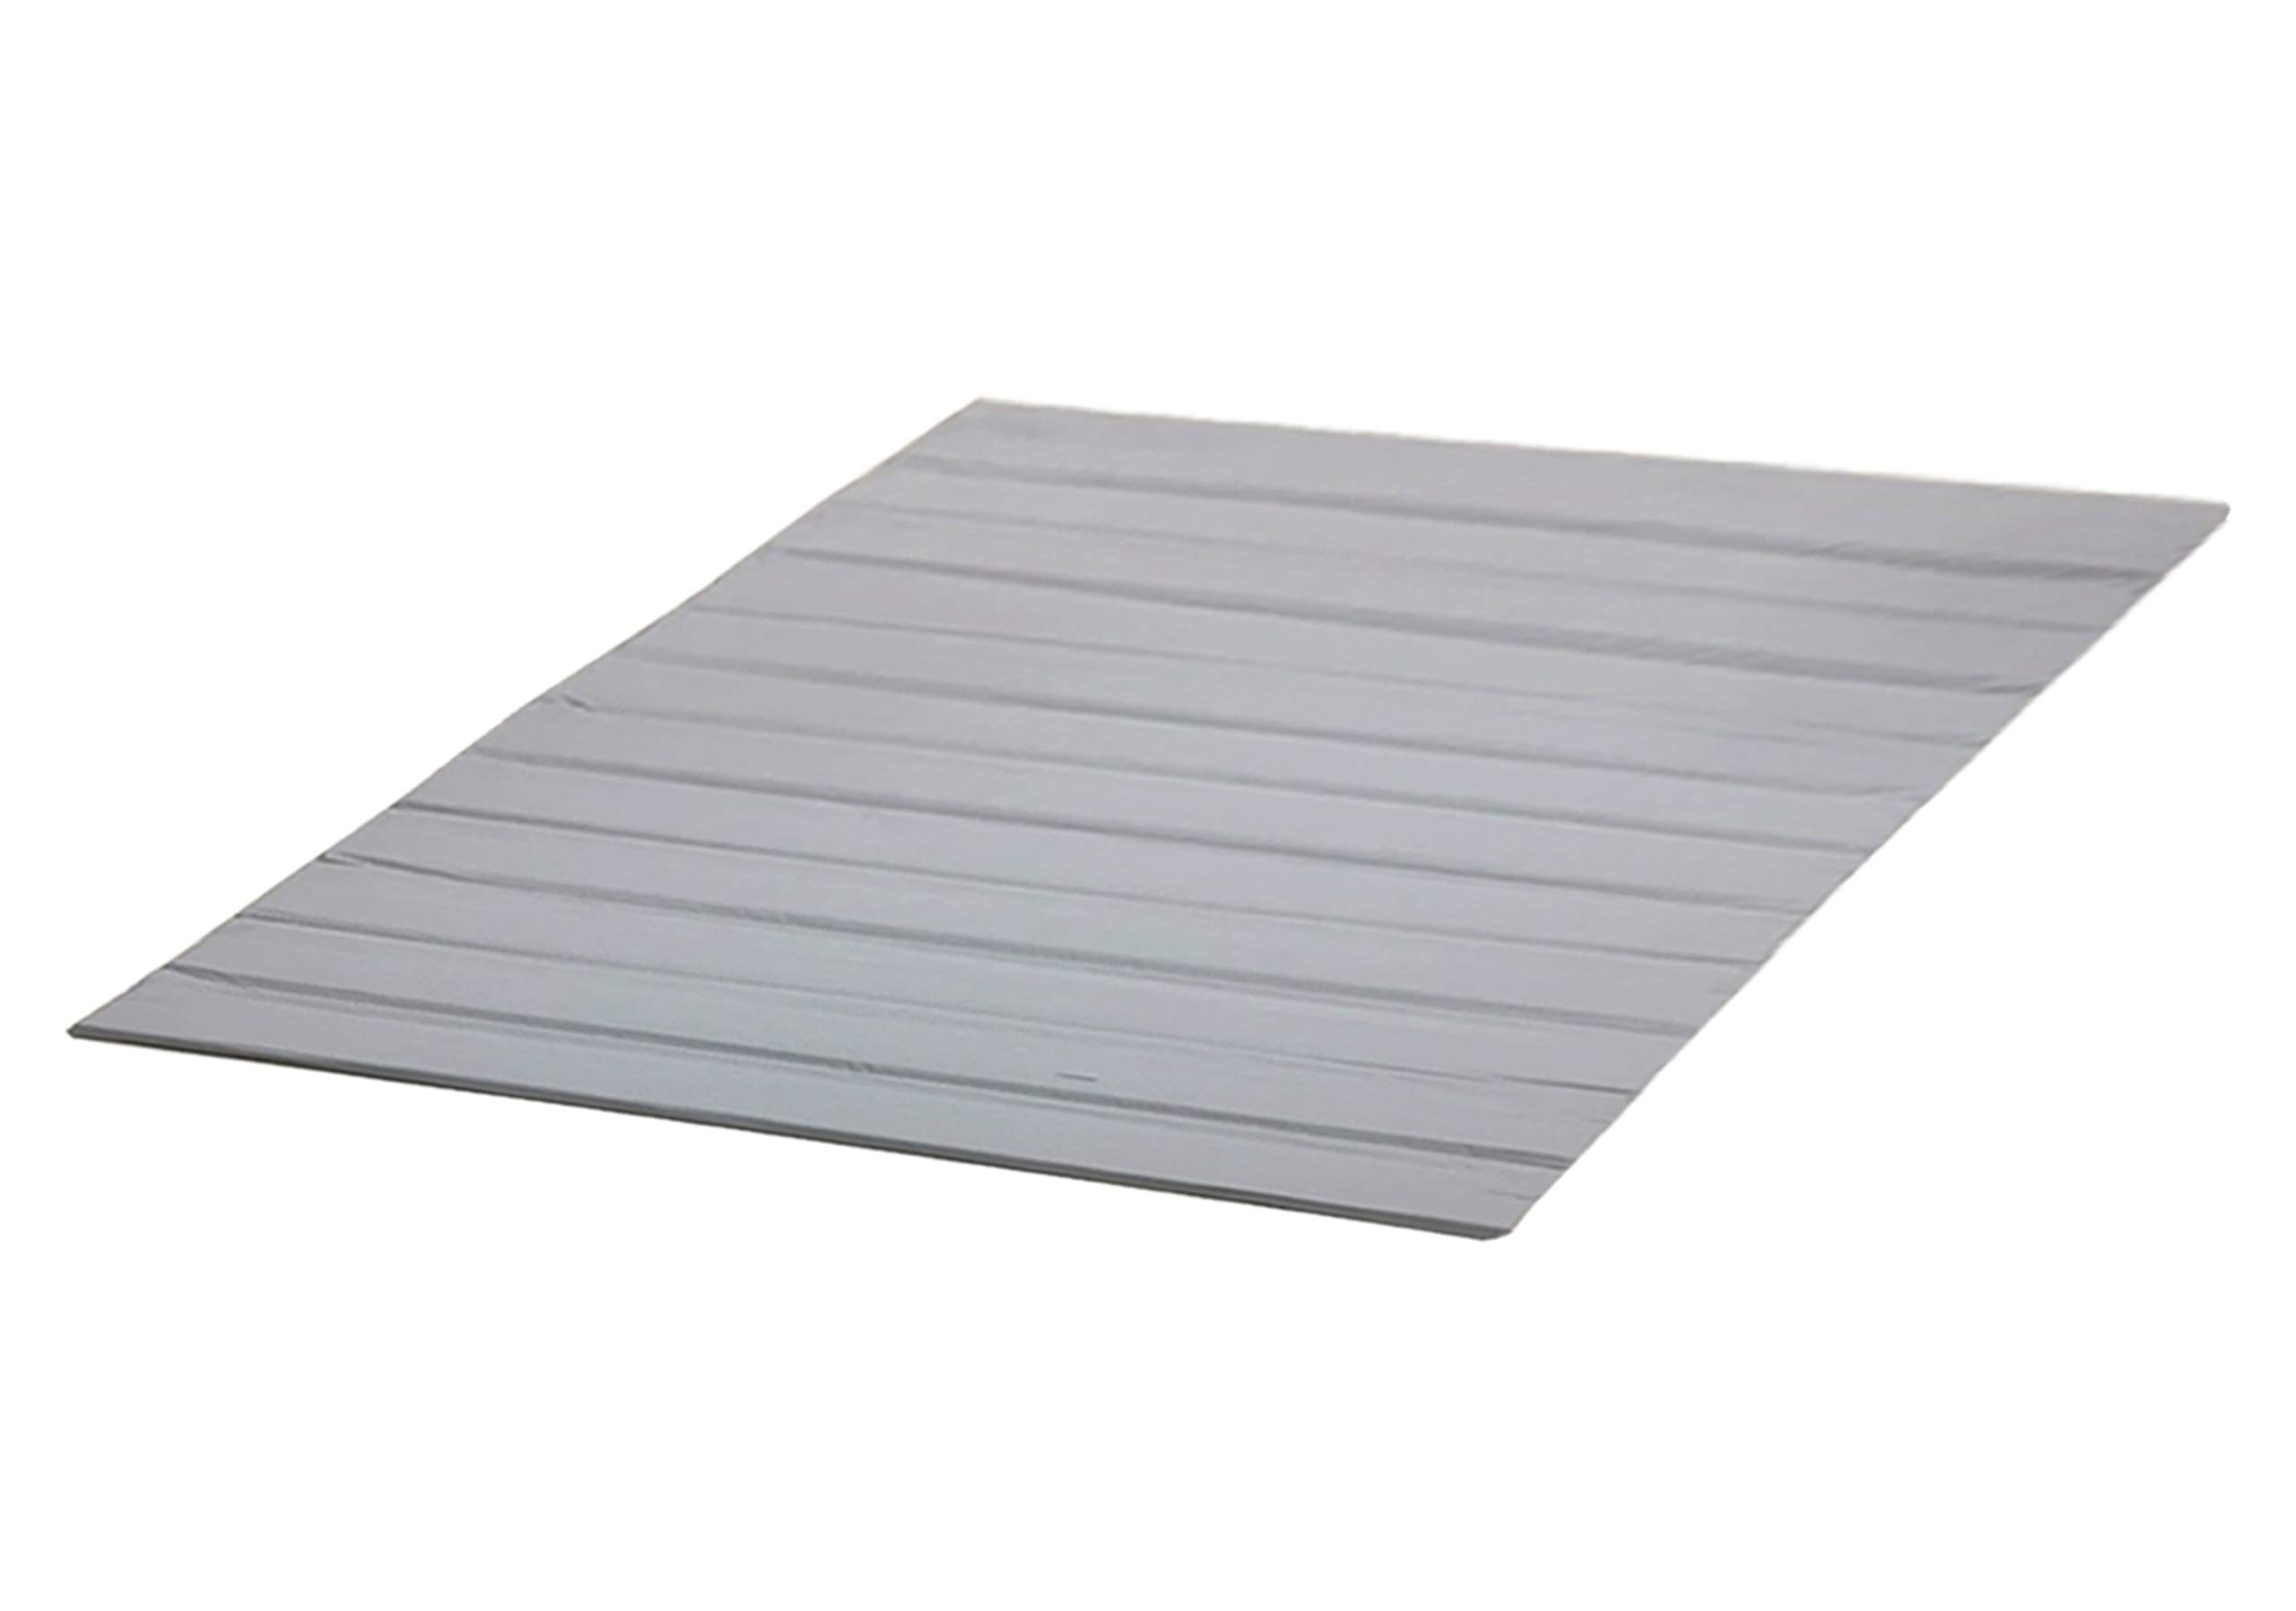 Greaton HCSBv-4/6 Heavy Duty Mattress Support Wooden Bunkie Board/Slats with Cover, Full Size by Greaton (Image #2)